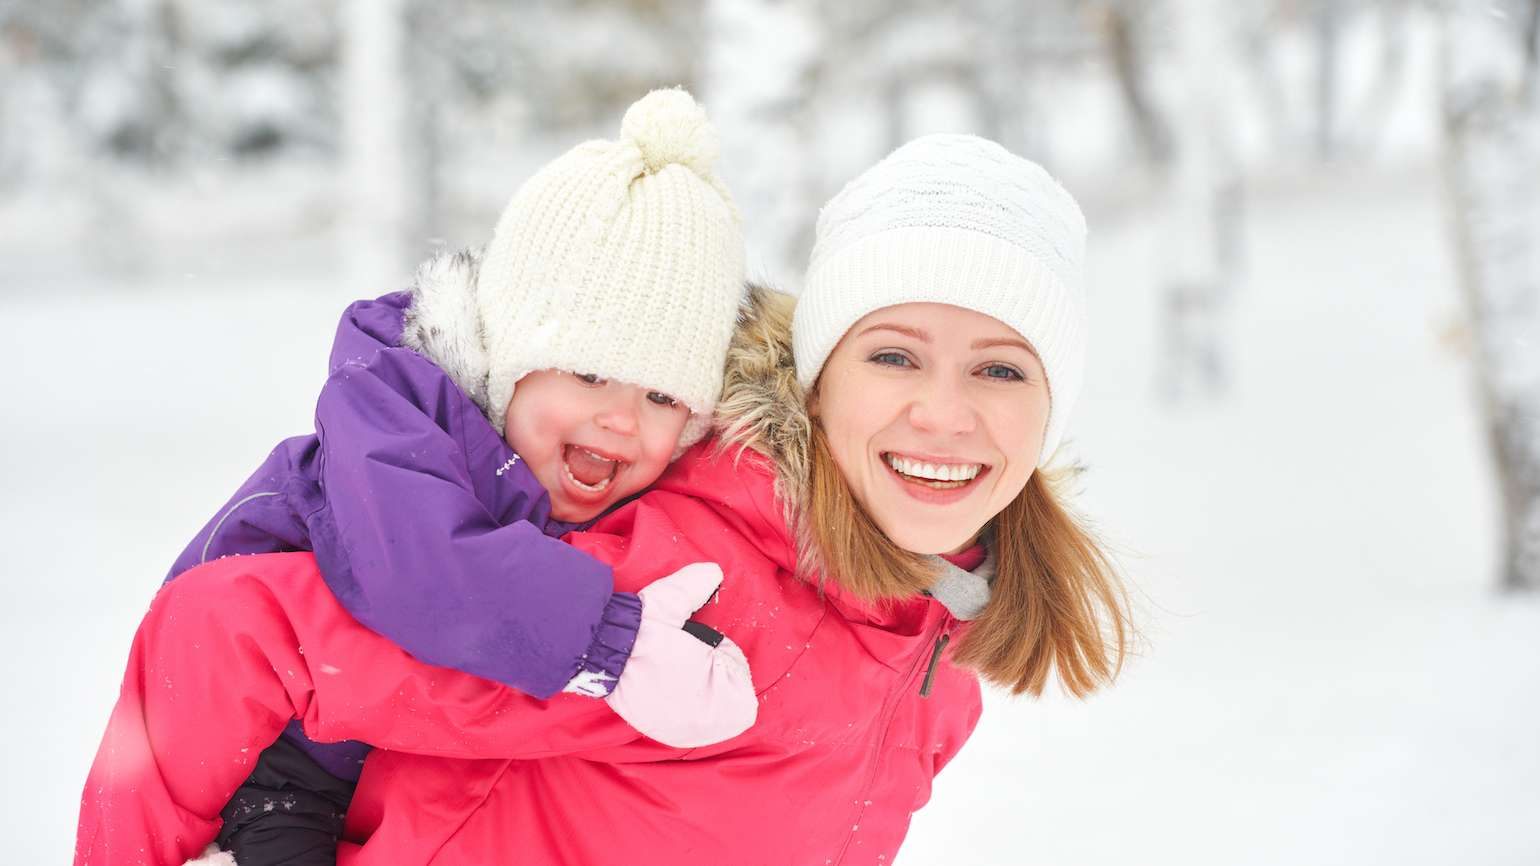 Less Stress for Military Families During the Holidays